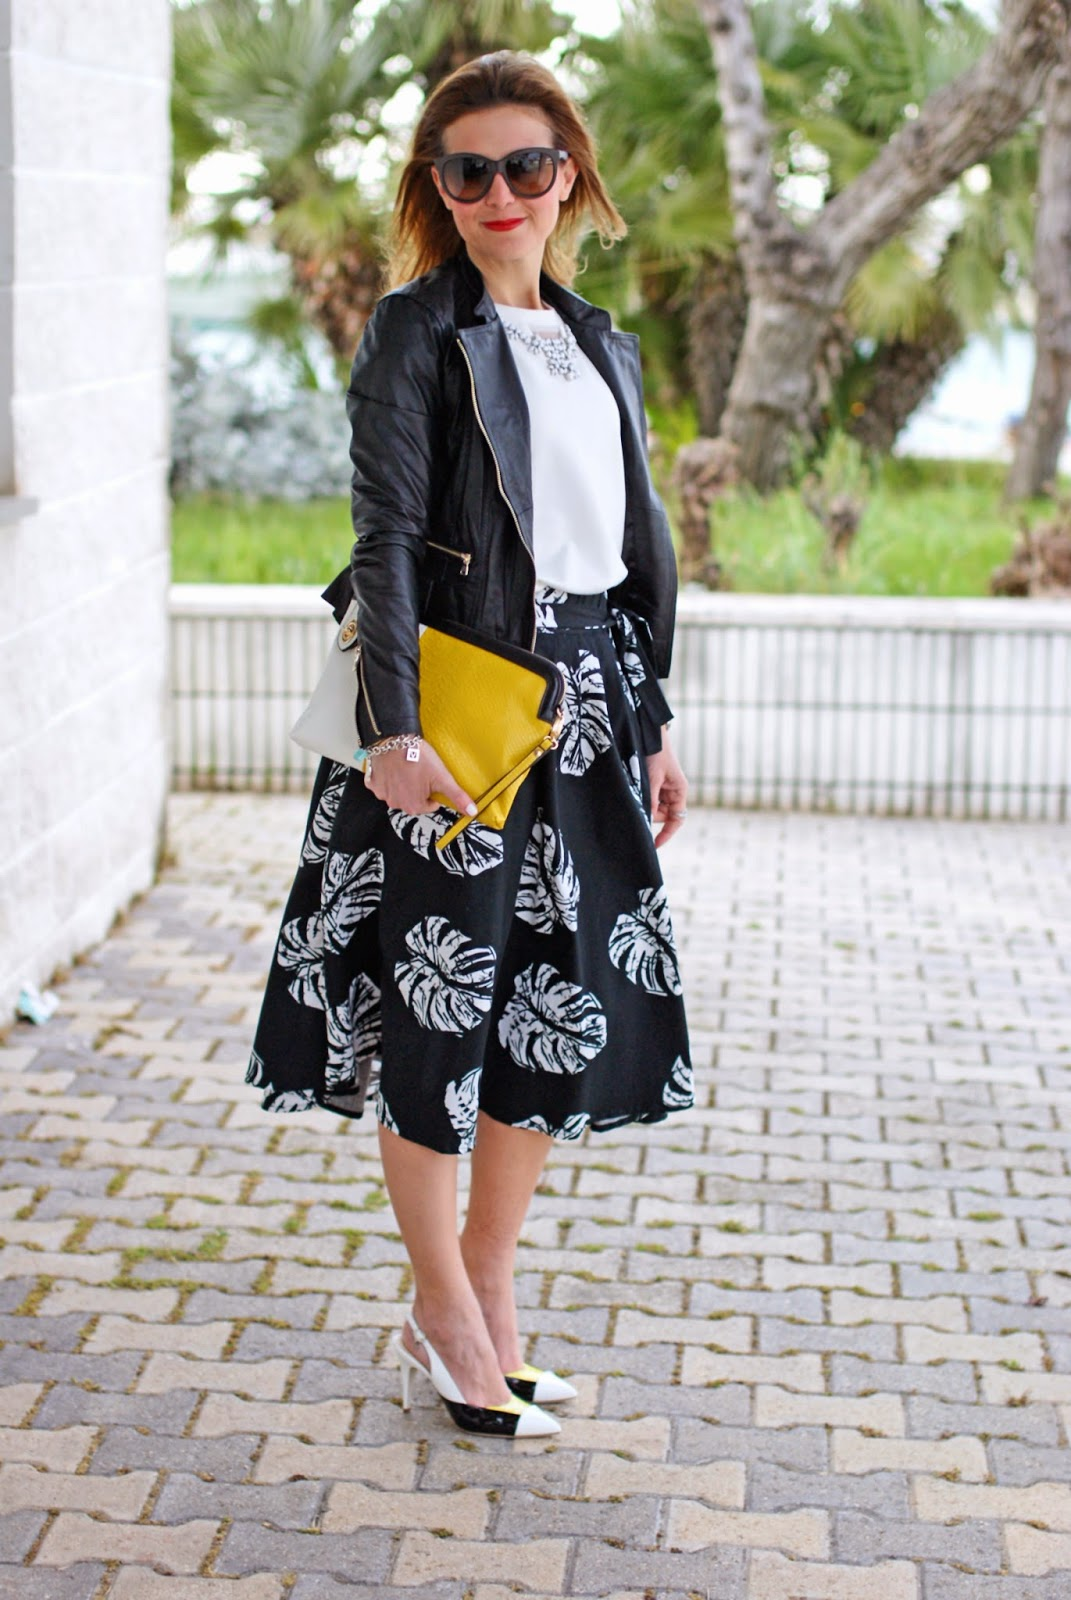 Giorgia & Johns felpa pietre e tulle, leather peplum jacket, palm leaves print skirt, Loriblu heels, Fashion and Cookies, fashion blogger